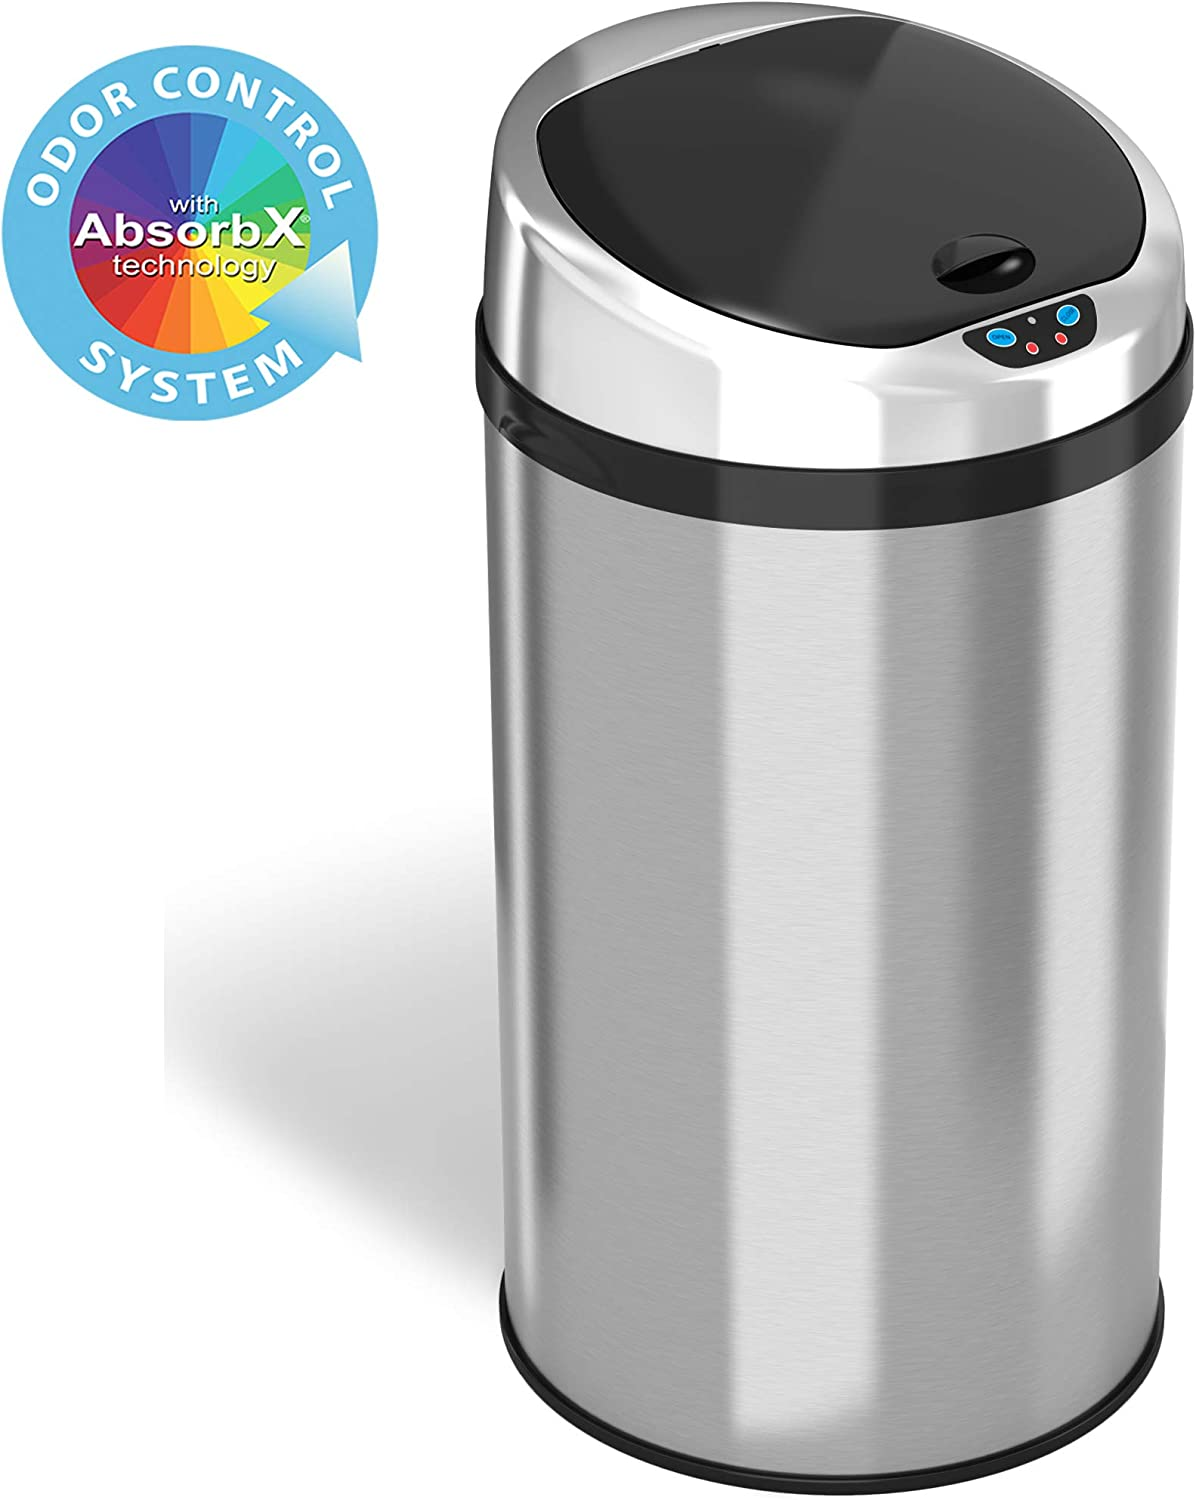 iTouchless 8 Gallon Touchless Sensor Trash Can with Odor Filter System, 30 Liter Round Stainless Steel Garbage Bin, Perfect for Home, Kitchen, Office